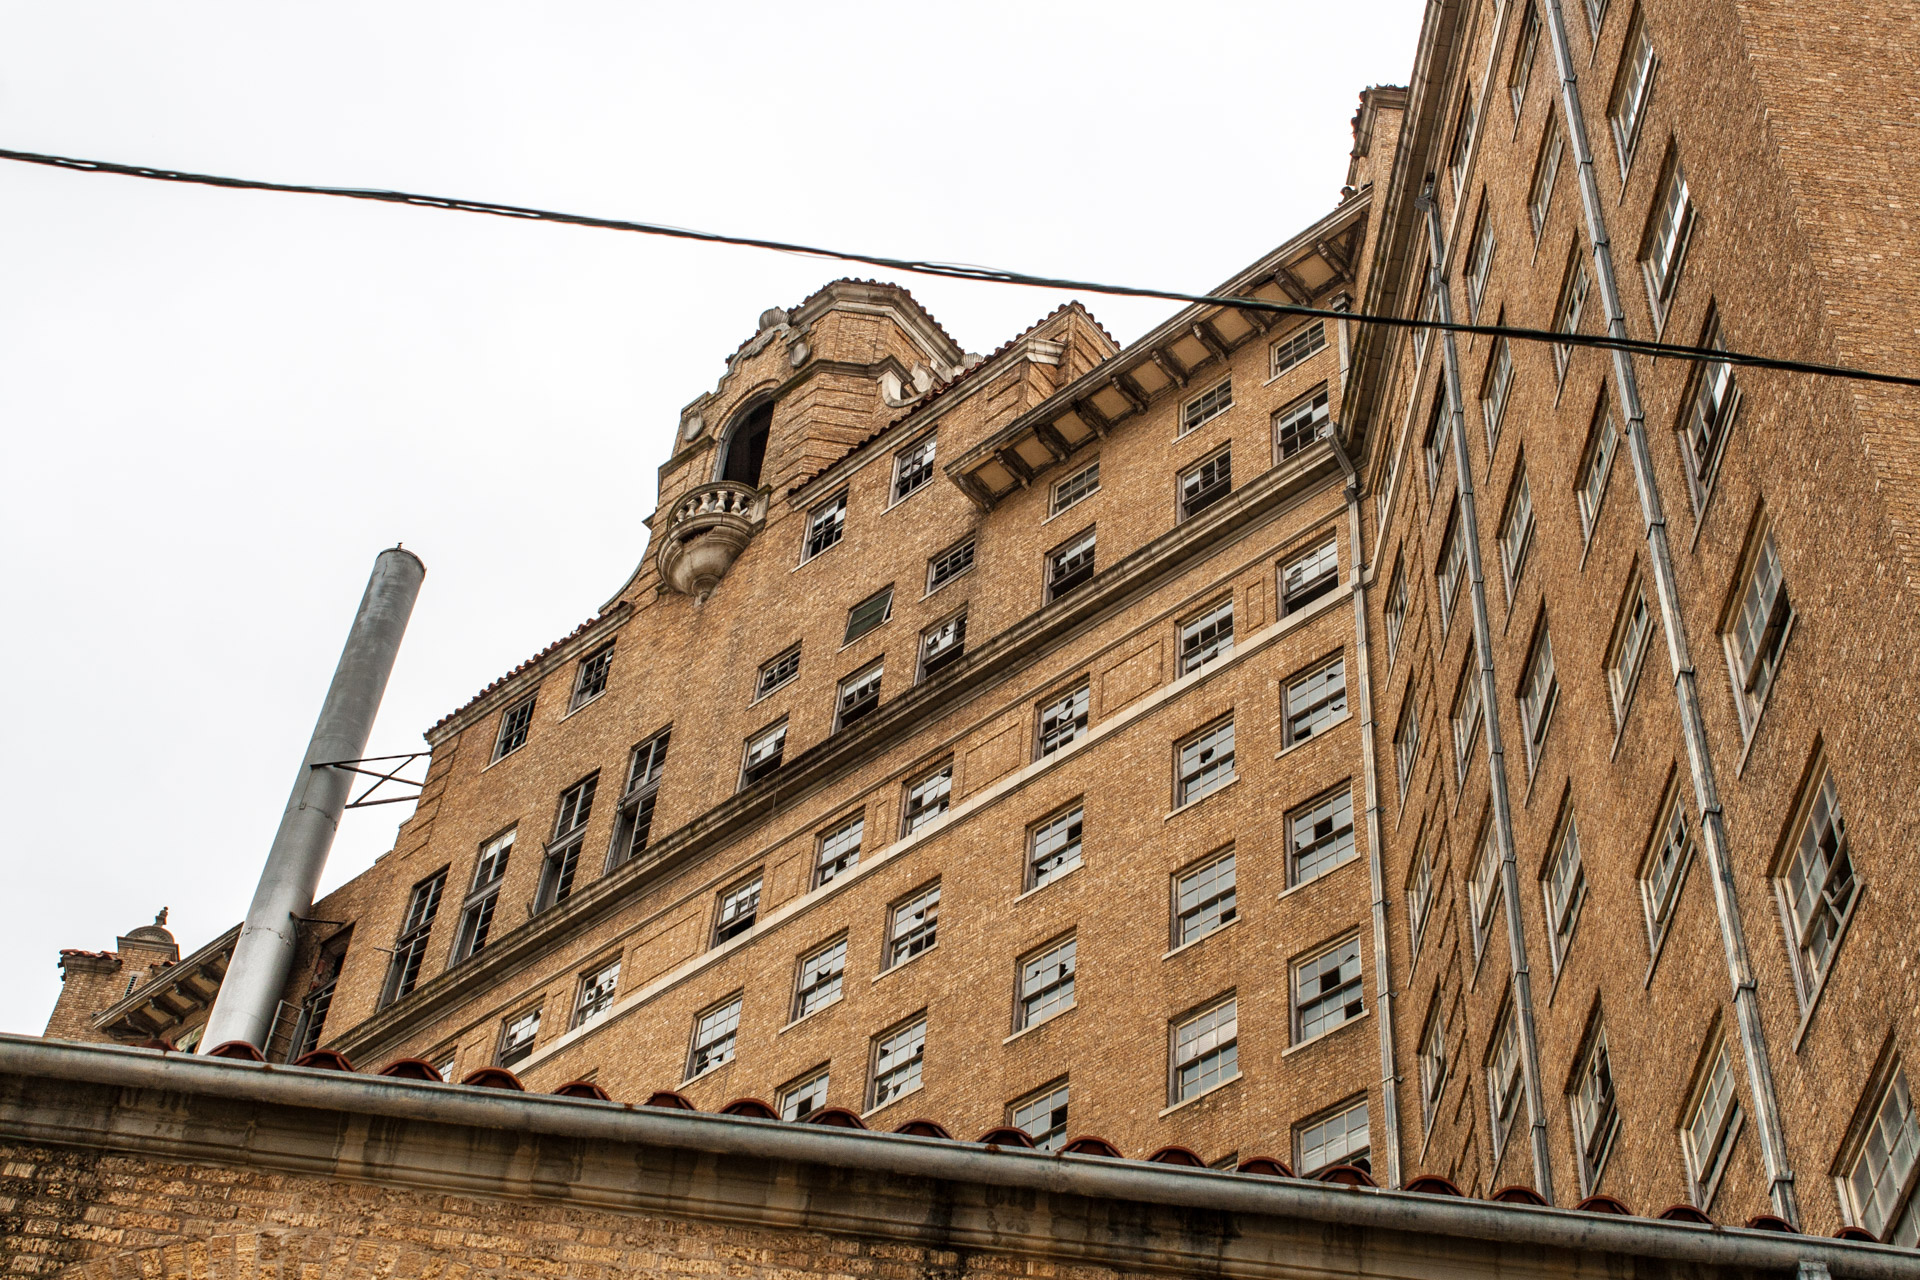 The Baker Hotel Part 2 (rear side)